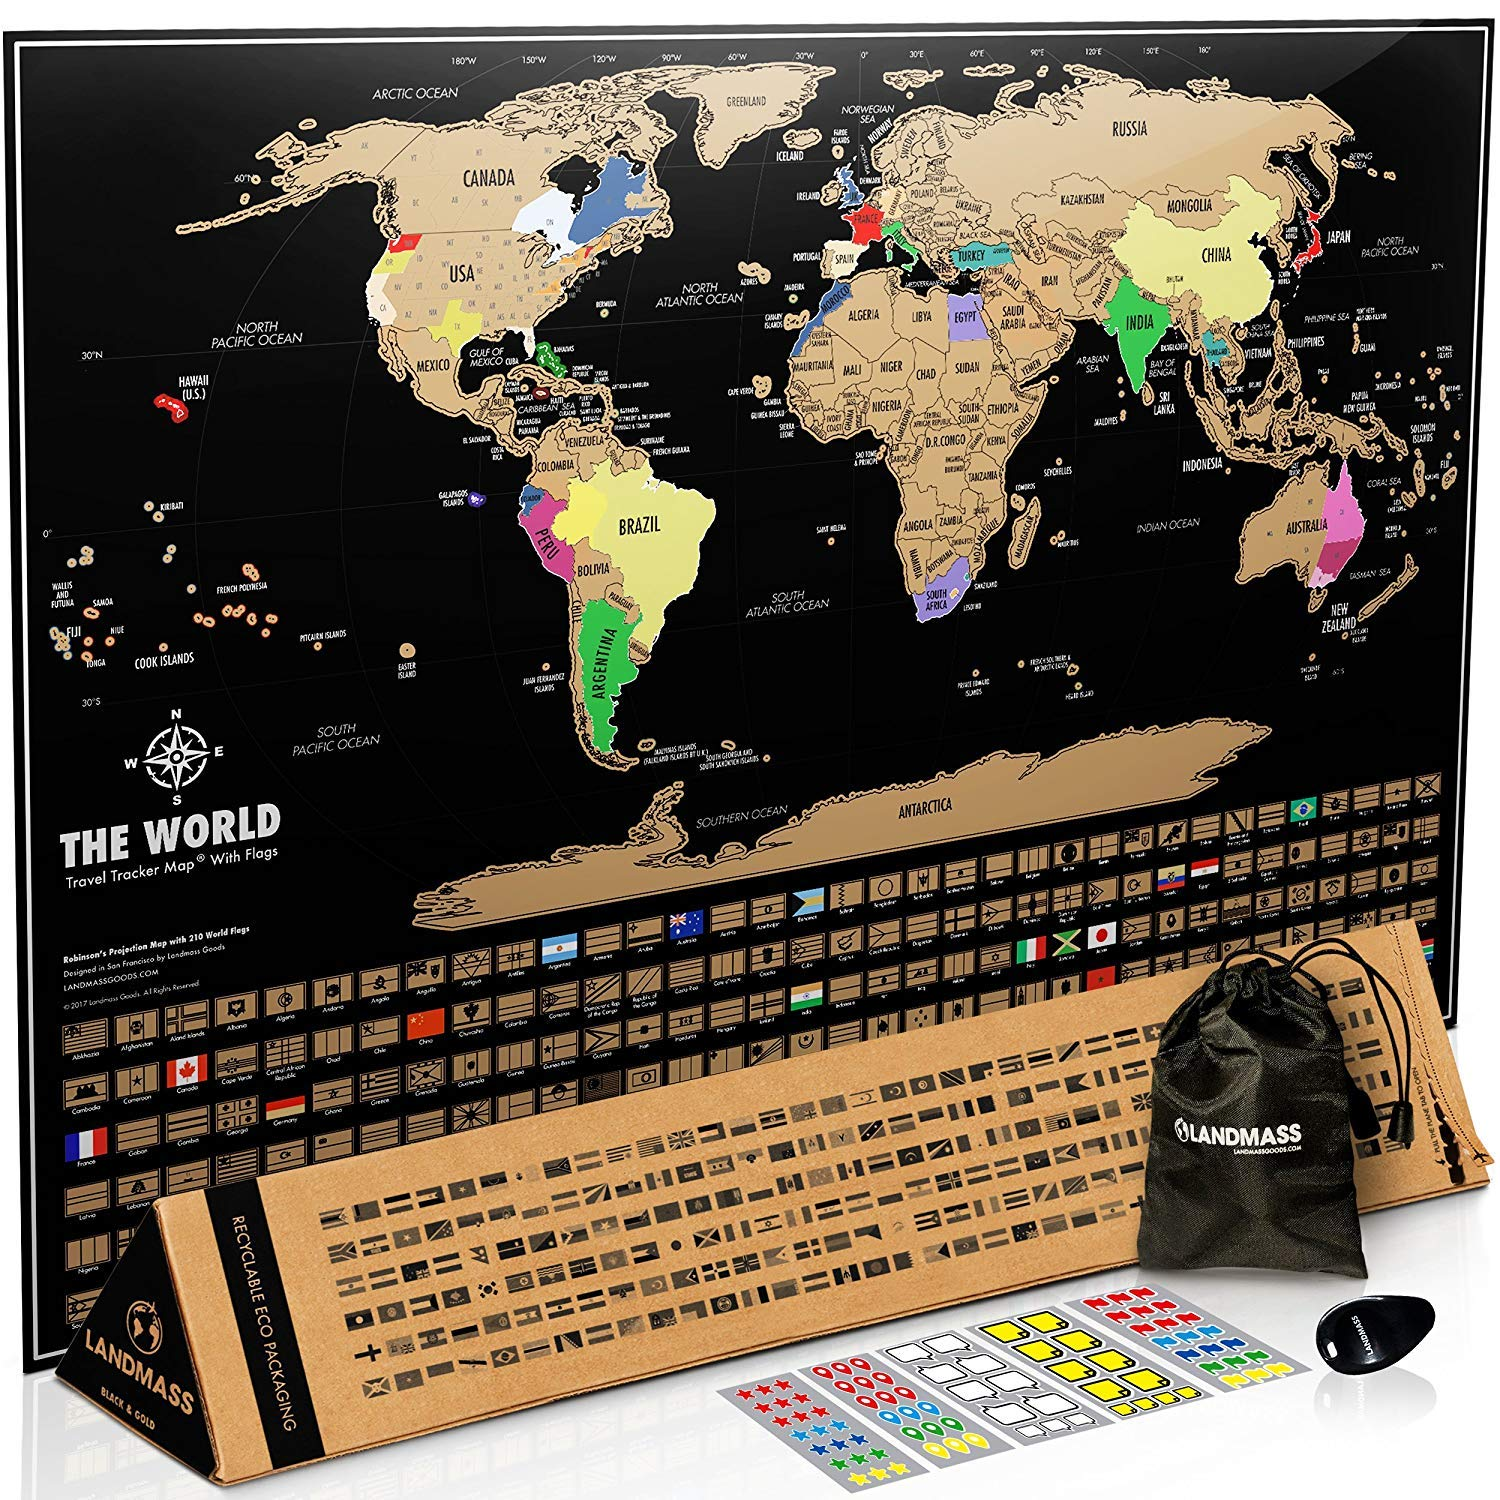 The Landmass Scratch Off World Map Poster travel product recommended by Robin Buck on Lifney.